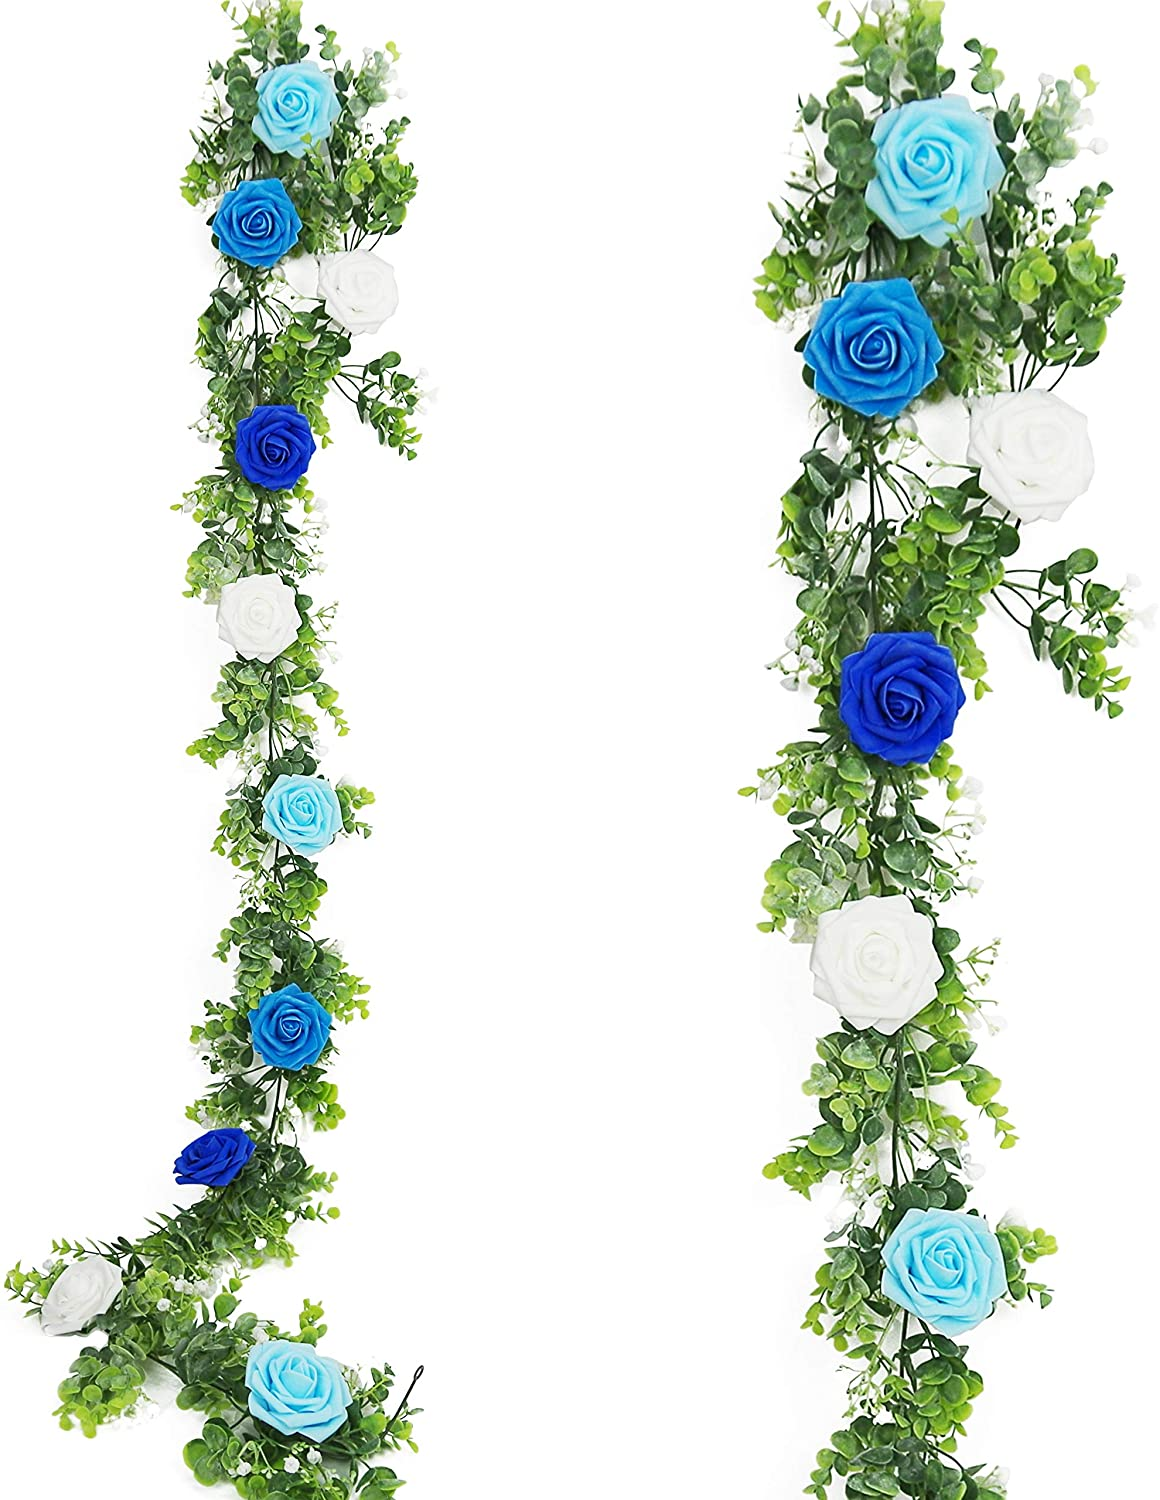 N/K Rose Flower Vine Garland, Artificial Flower Plants Hanging Rose Dusty Eucalyptus Garland for Wedding Party Garden Home Craft Art Décor 6.4 Ft(Blue #1)